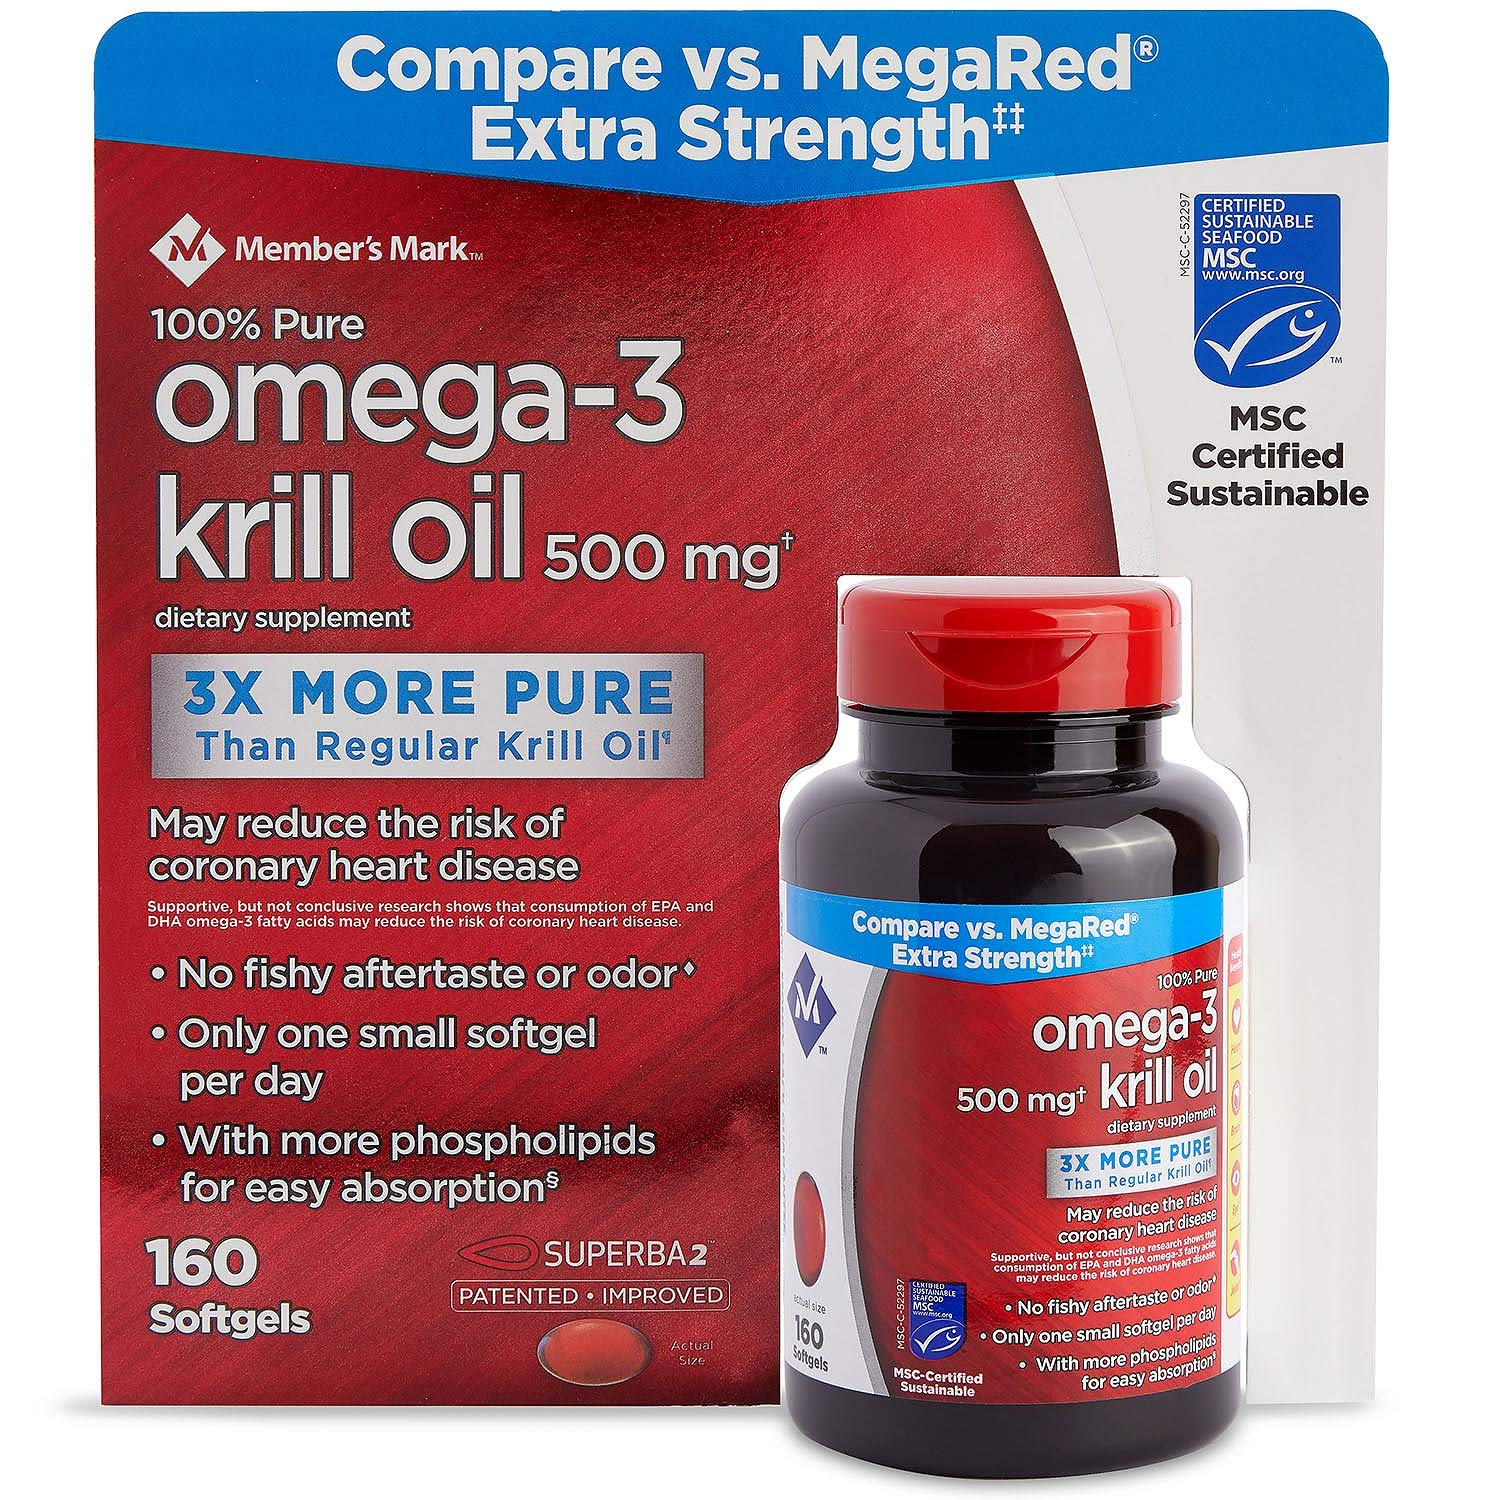 Member's Mark Extra Strength 100% Pure Omega-3 Krill Oil, 500mg 160 ct. (Pack of 3) A1 by Members Mark (Image #1)